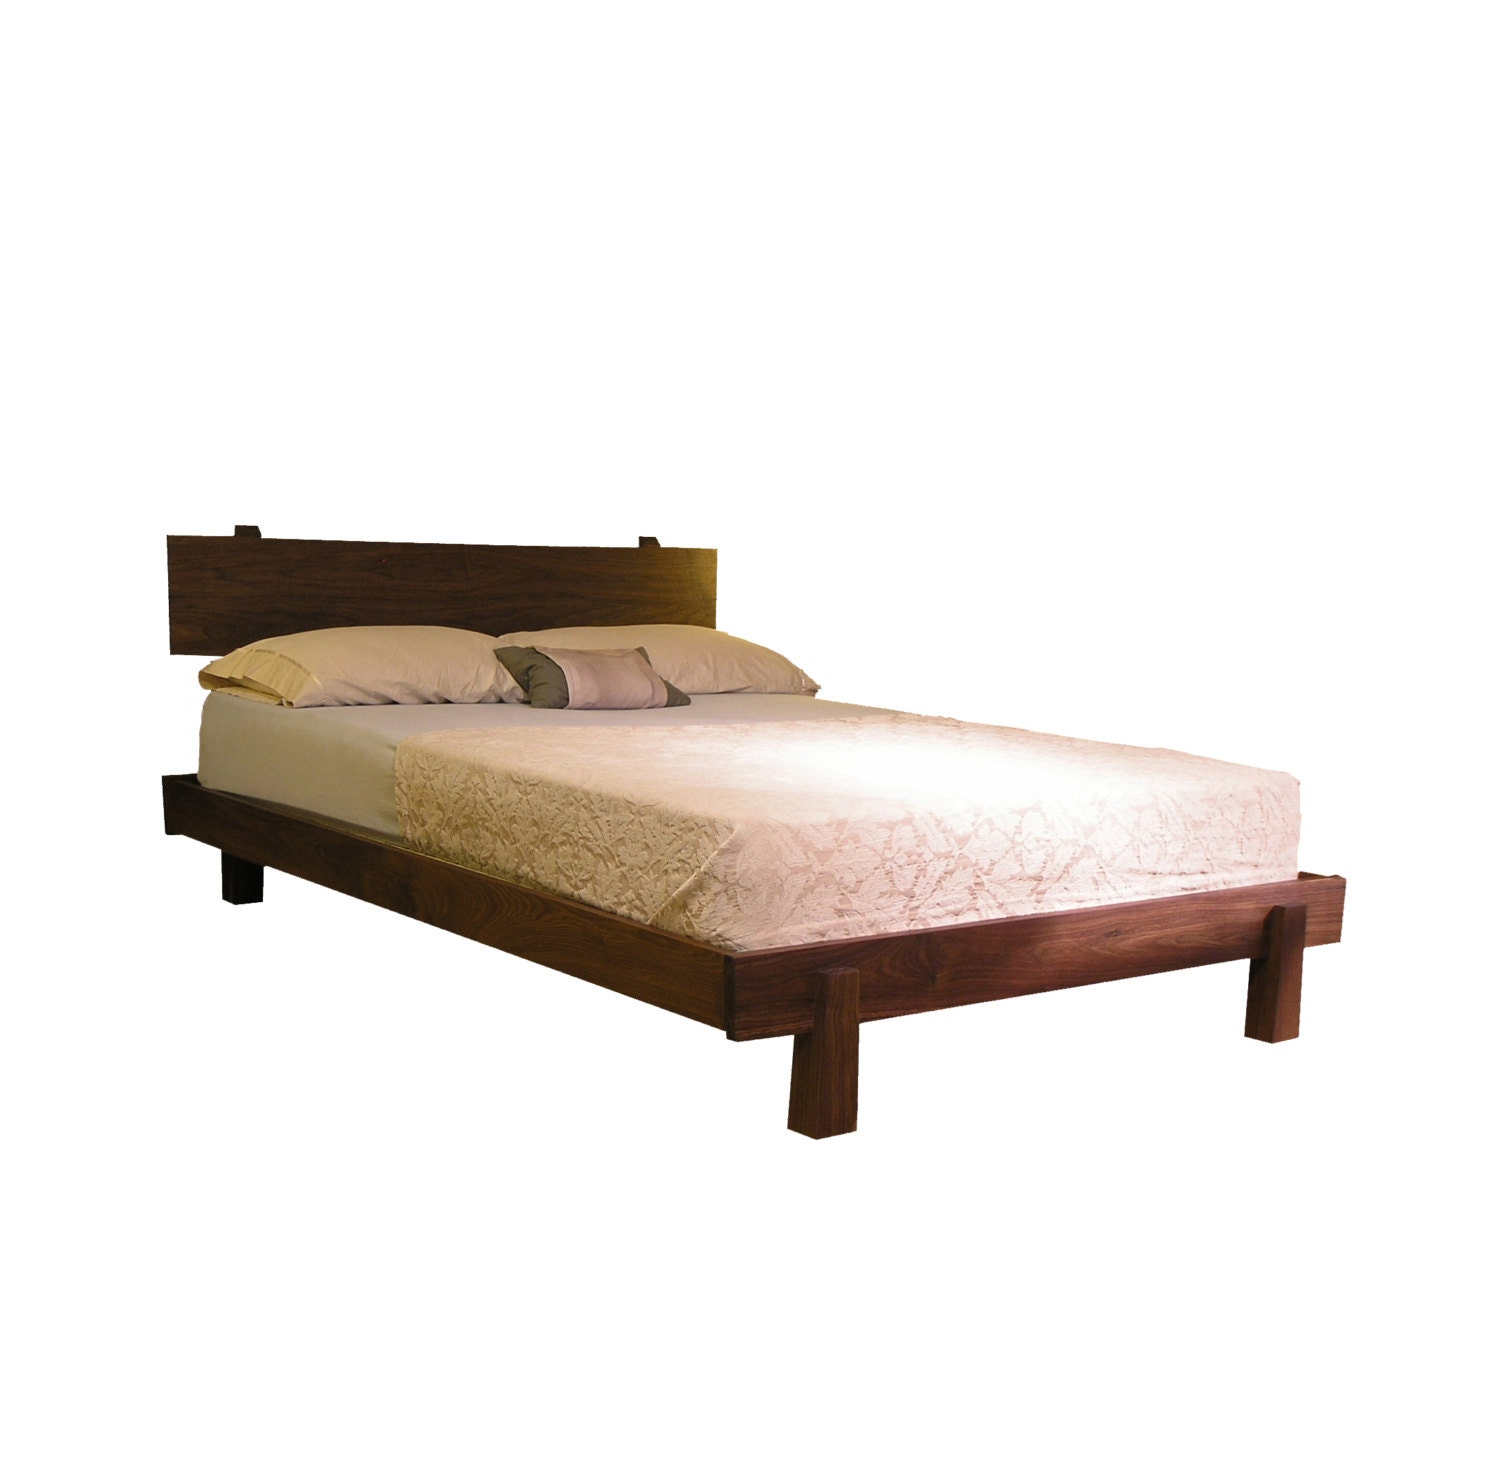 enso platform bed modern rustic asian twin full by. Black Bedroom Furniture Sets. Home Design Ideas